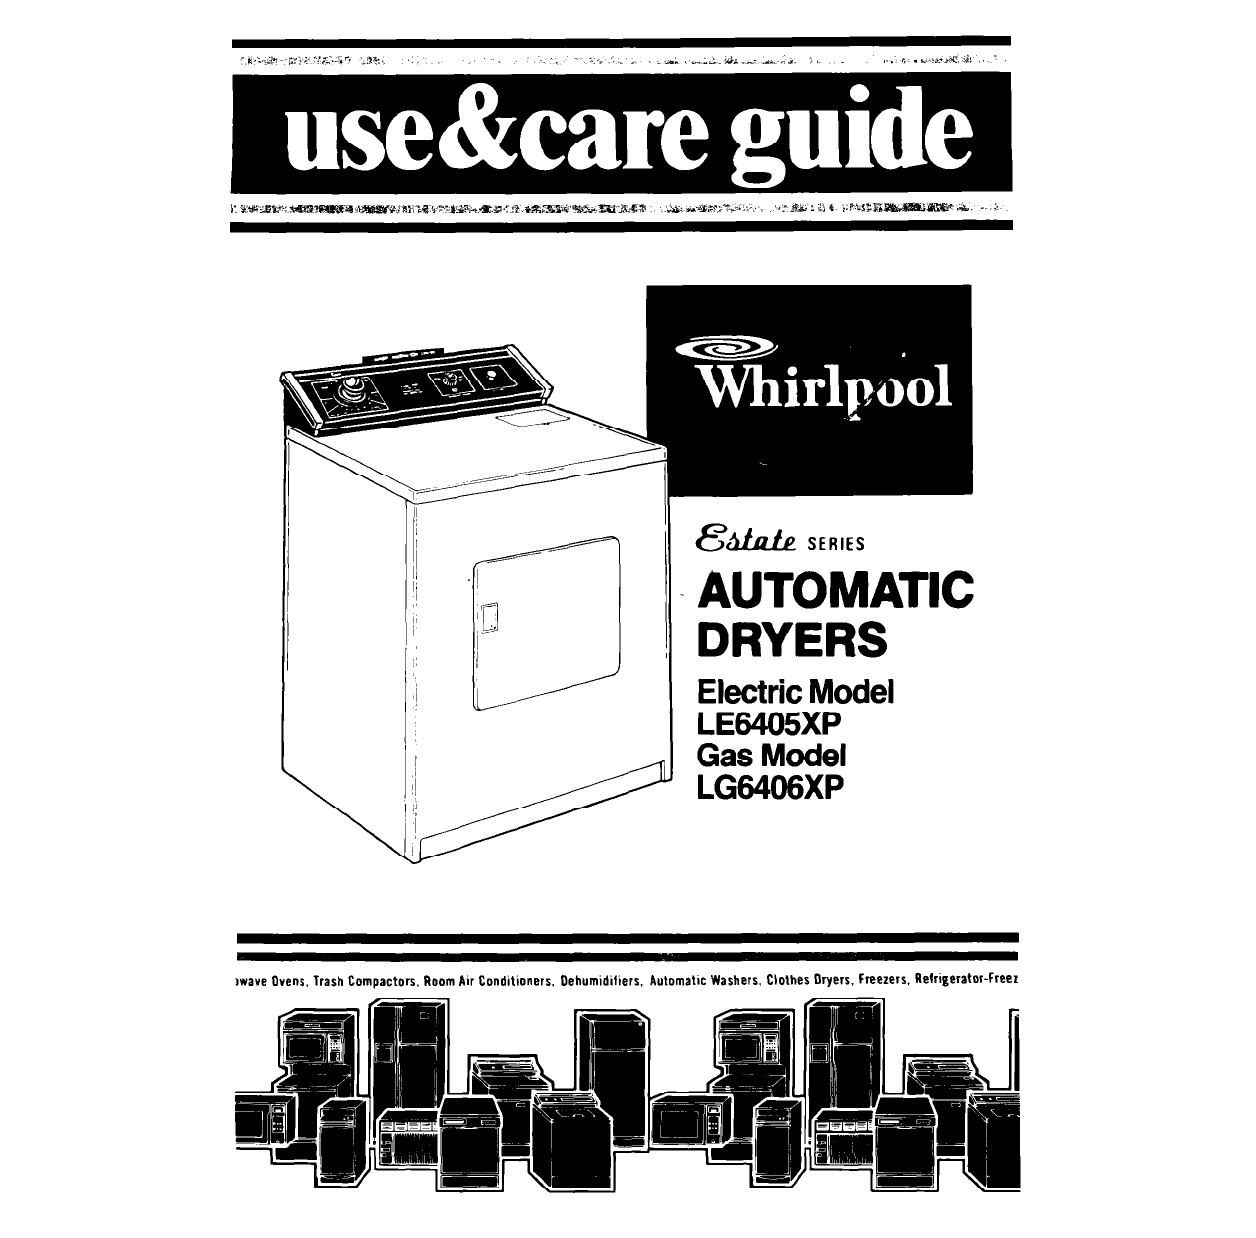 Whirlpool Clothes Dryer LE6405XP User Guide